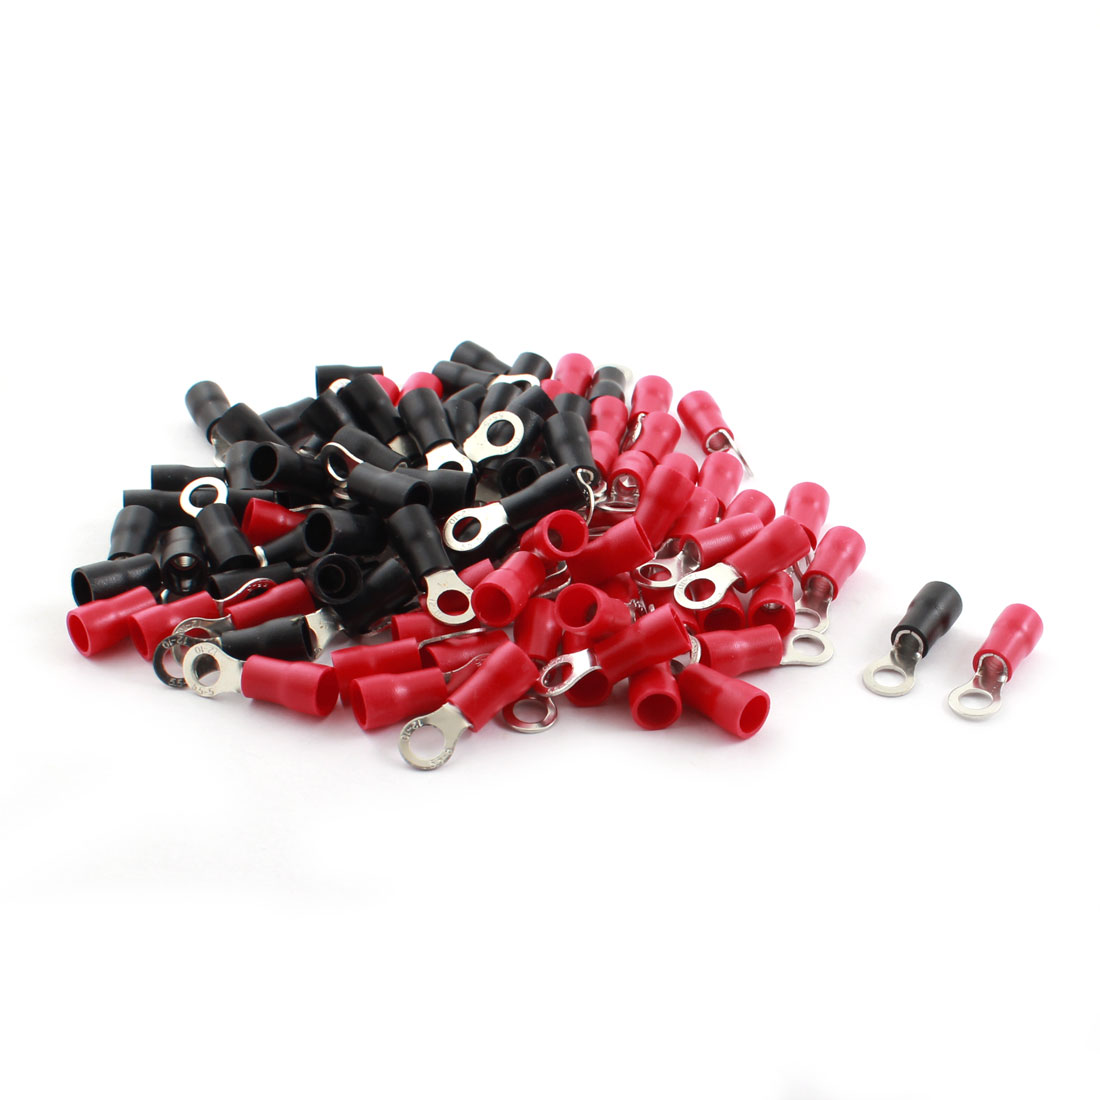 100 Pcs RV5.5-5 48A 12-10AWG Red Black Pre Insulated Ring Crimp Terminal Cable Connector 6.4mm Dia